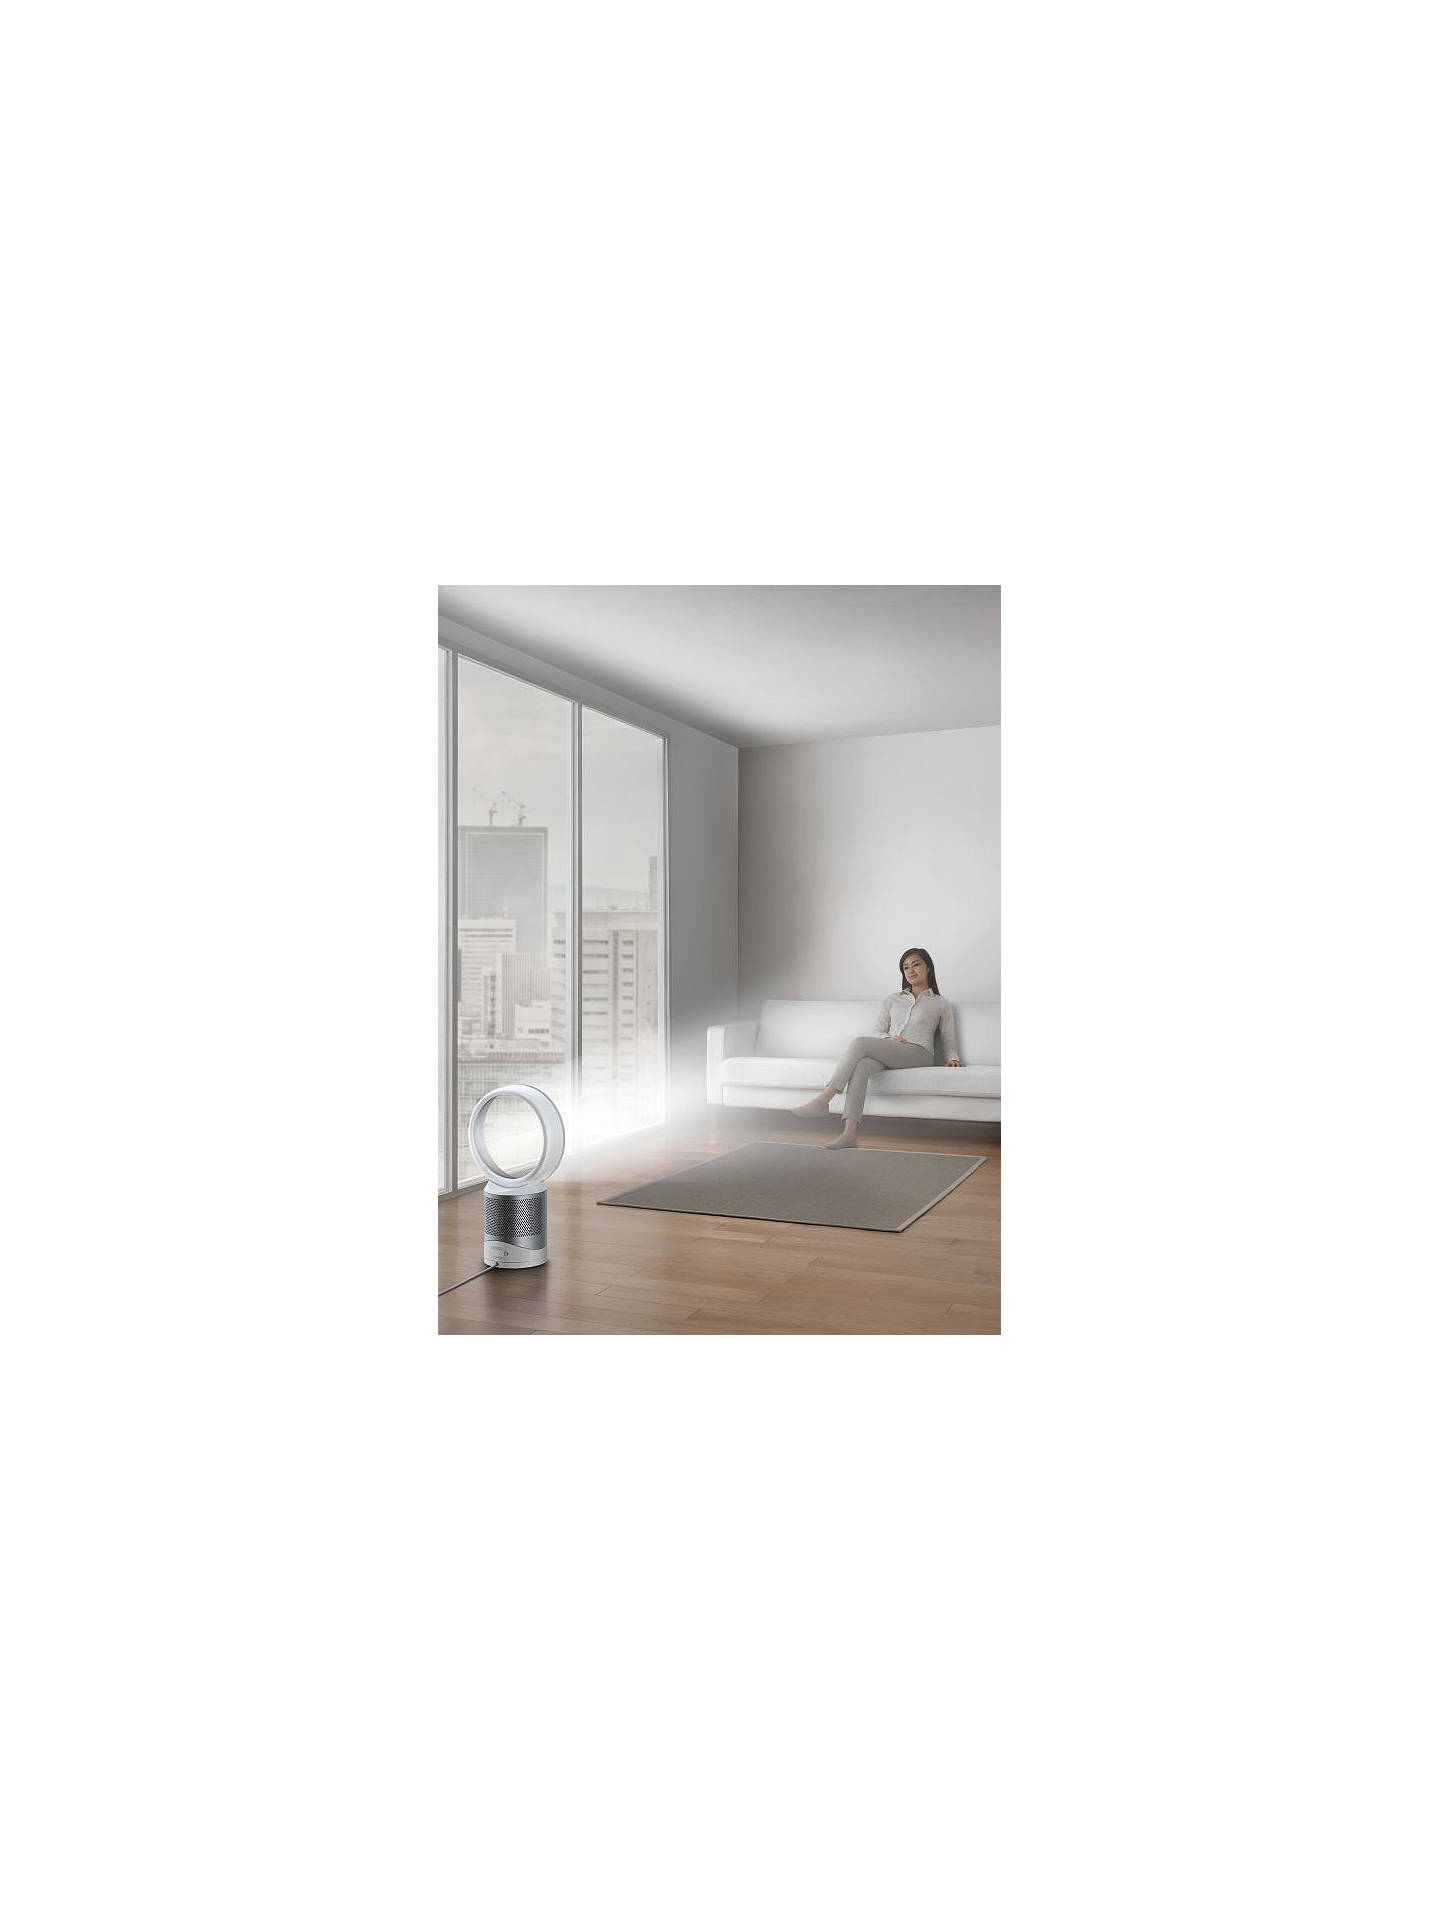 BuyDyson Pure Cool Link Purifying Desk Fan, White/Silver Online at johnlewis.com